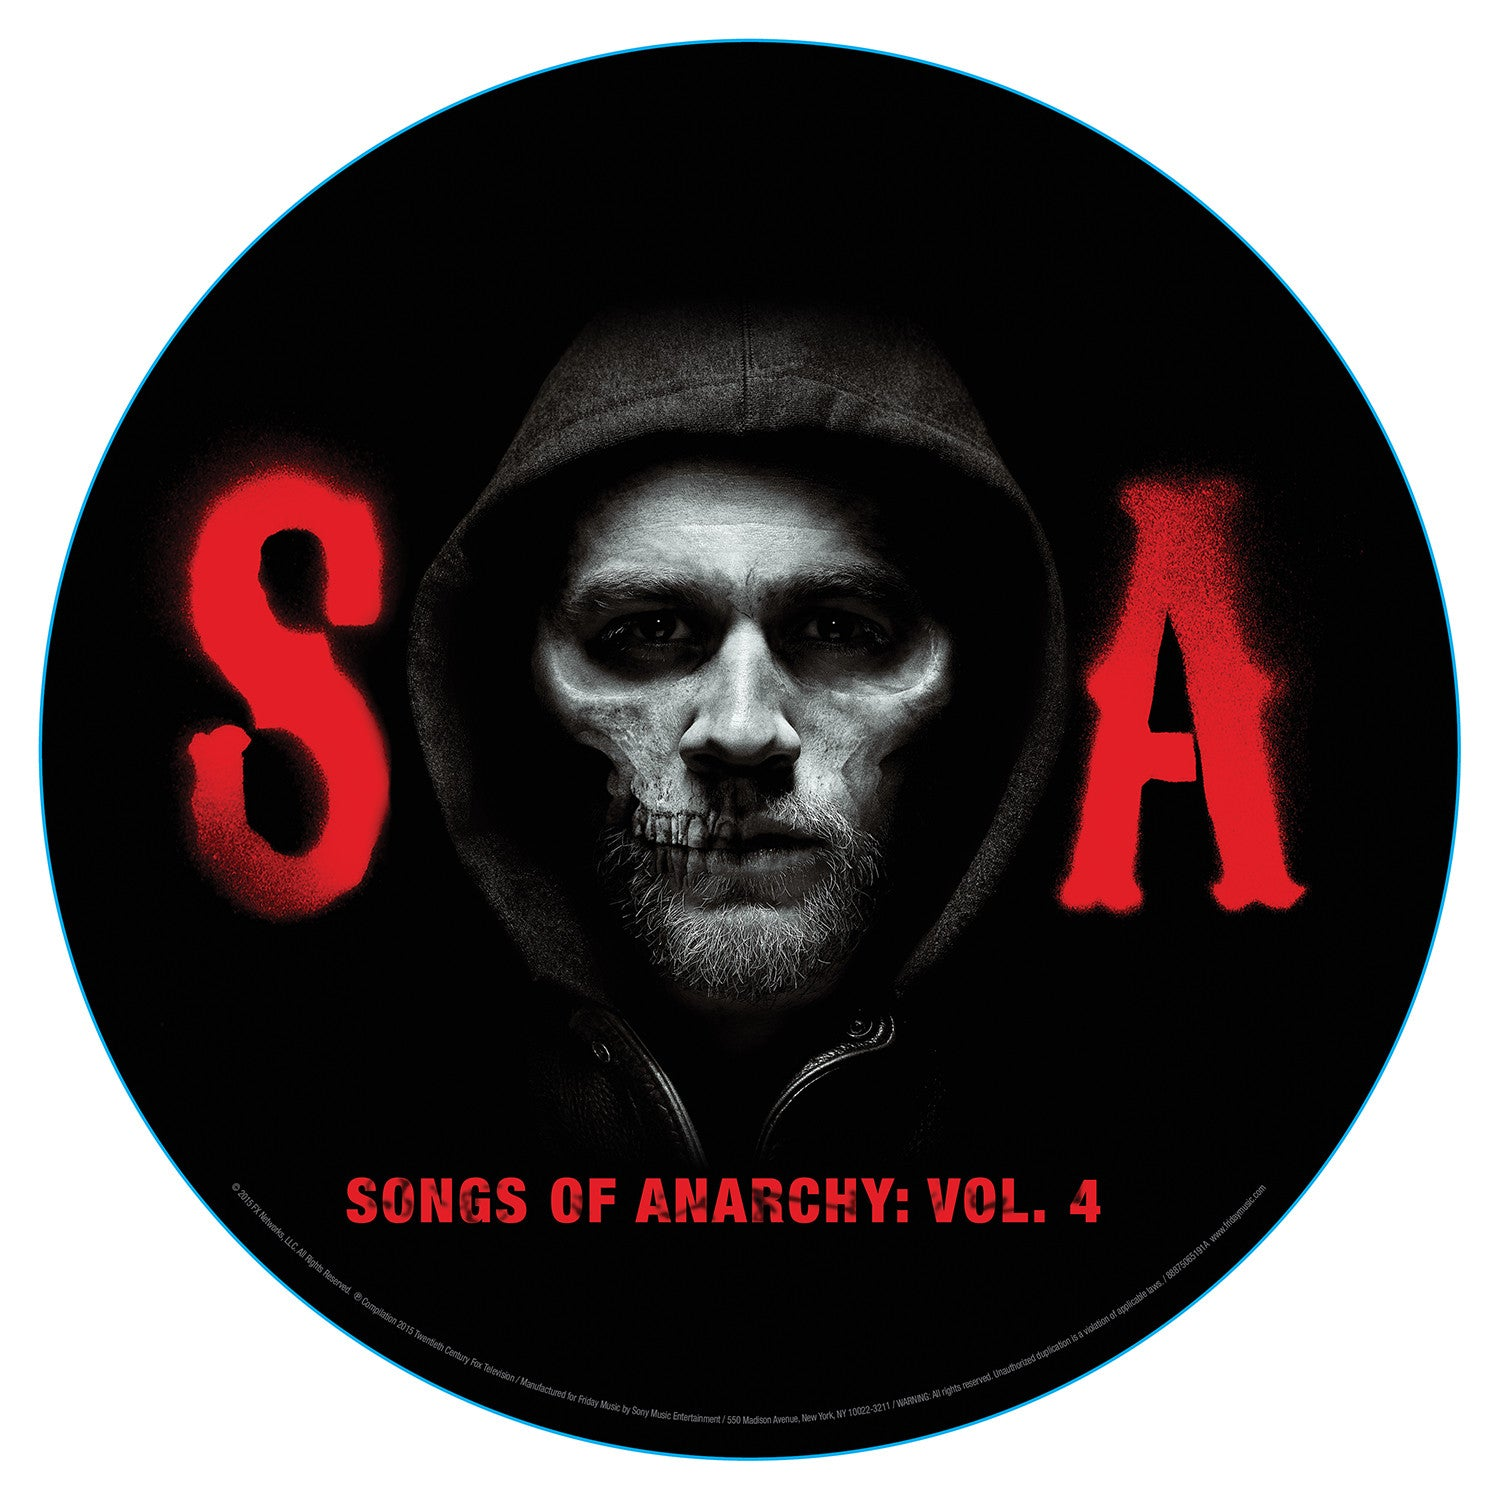 Soundtrack - Sons of Anarchy / Songs of Anarchy Vol 4 (Season 7) - New Vinyl Record 2015 Record Store Day Black Friday Limited Edition 2-LP Picture Disc in Clear Gatefold Cover - 1500 Copies!